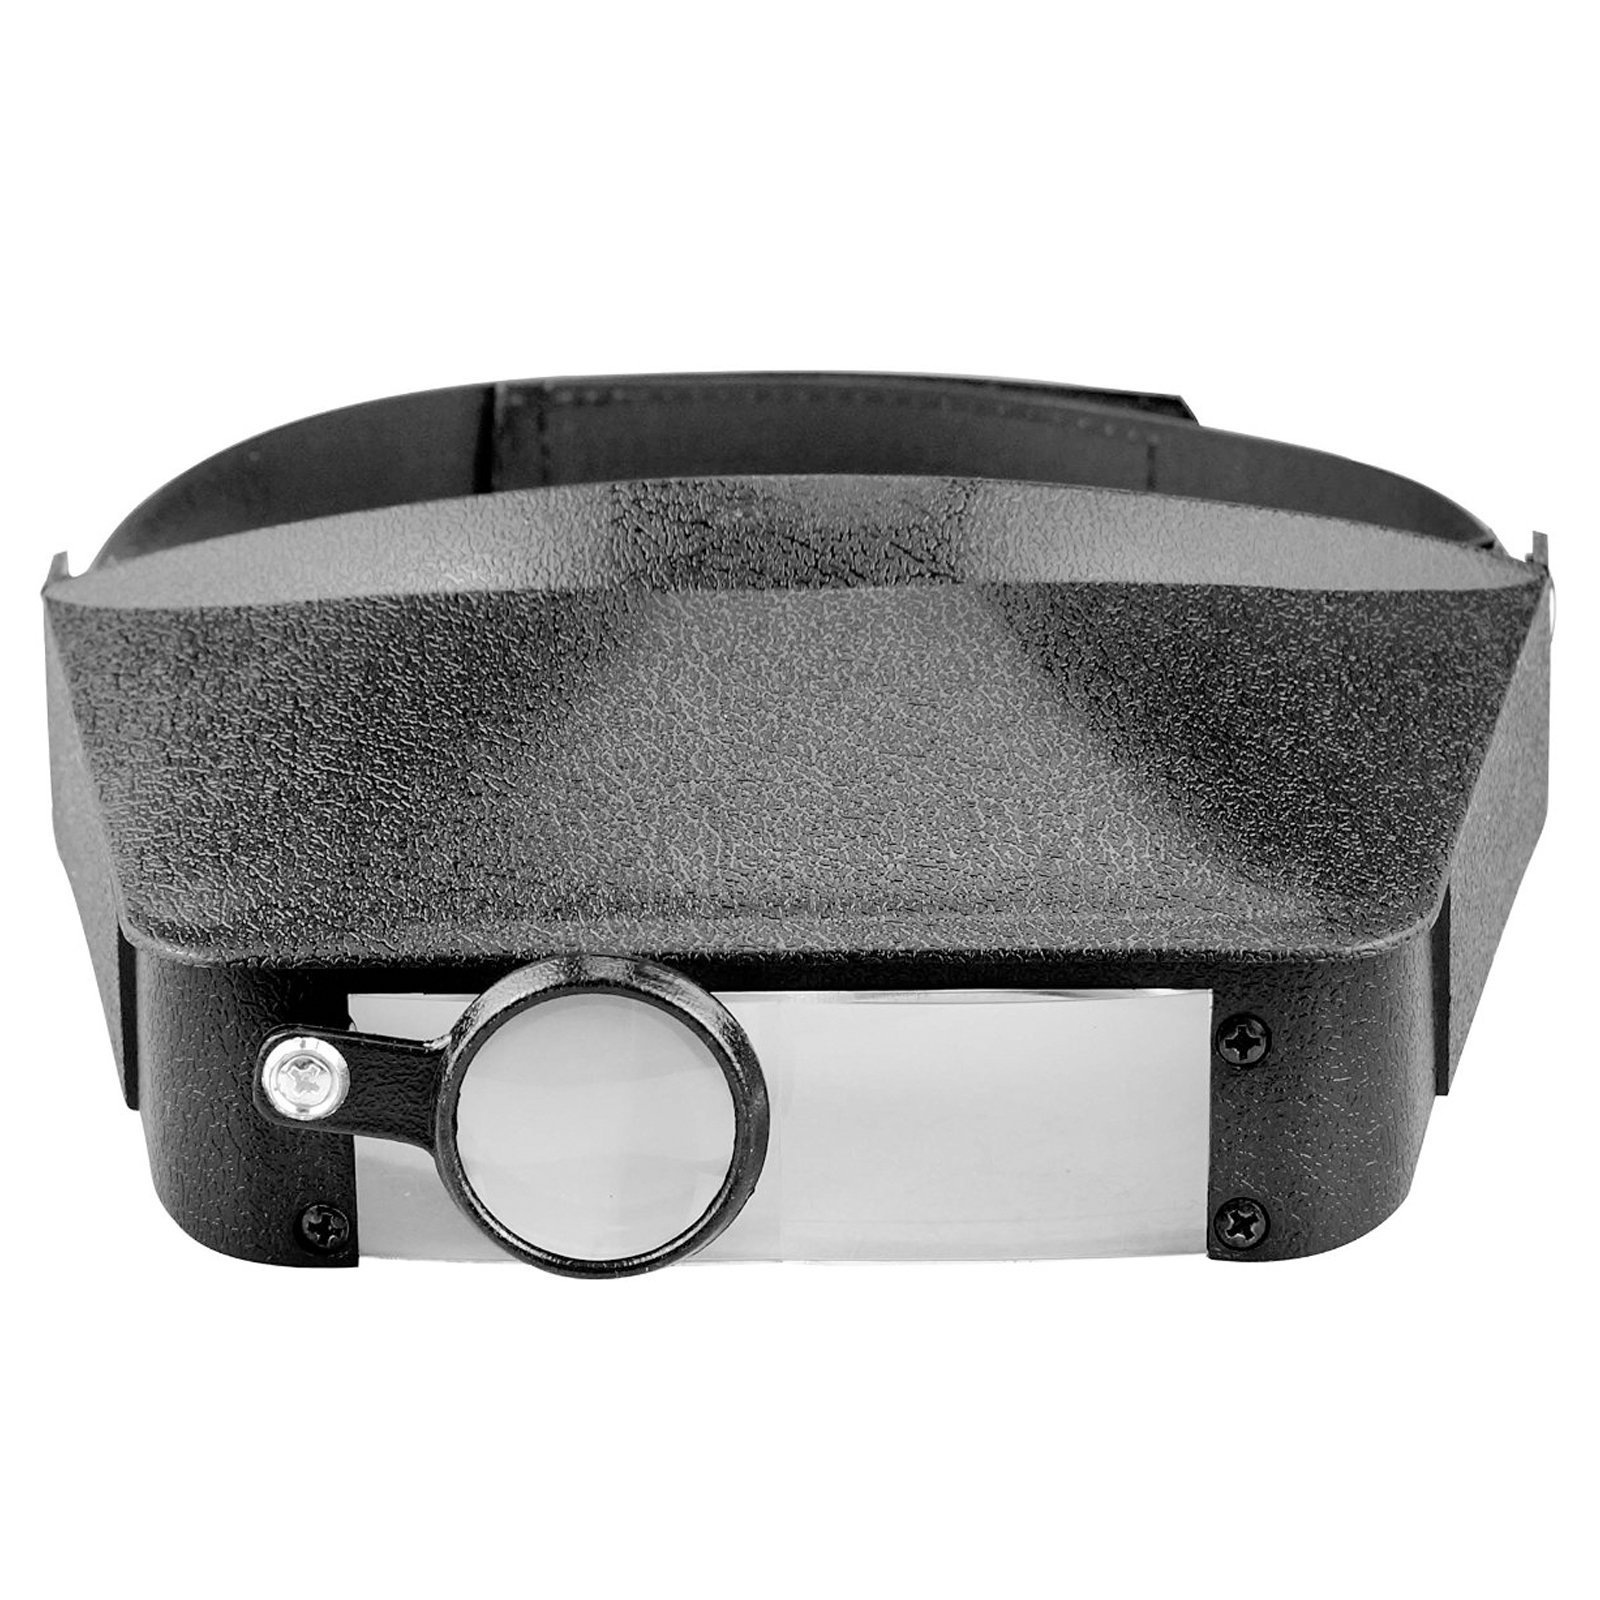 Multifunctional Magnifier Multi Power Jewelers Head Magnifier